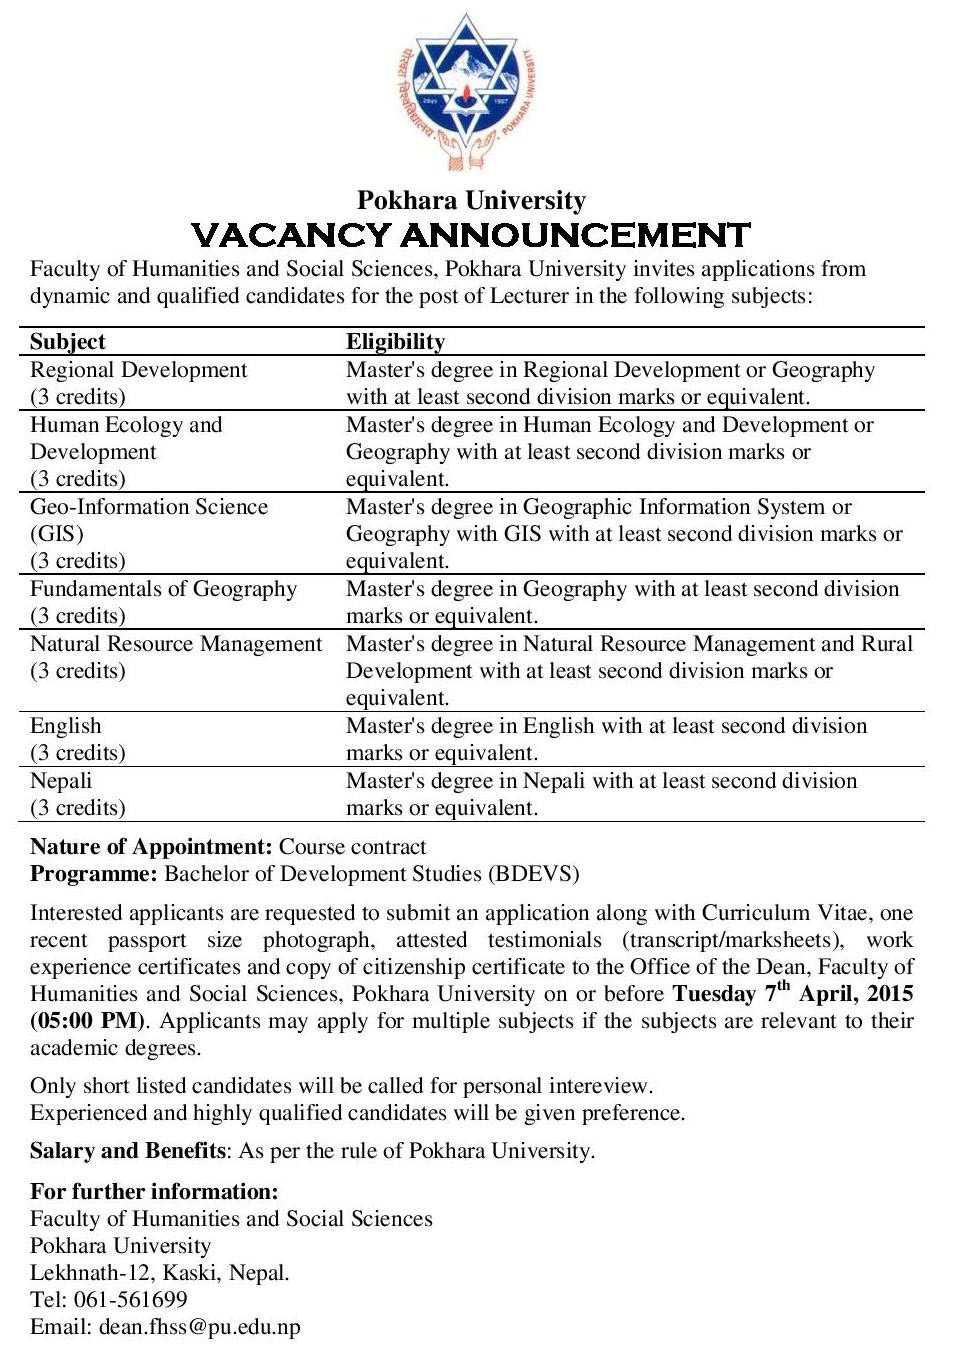 VACANCY-ANNOUNCEMENT-2071-page-001